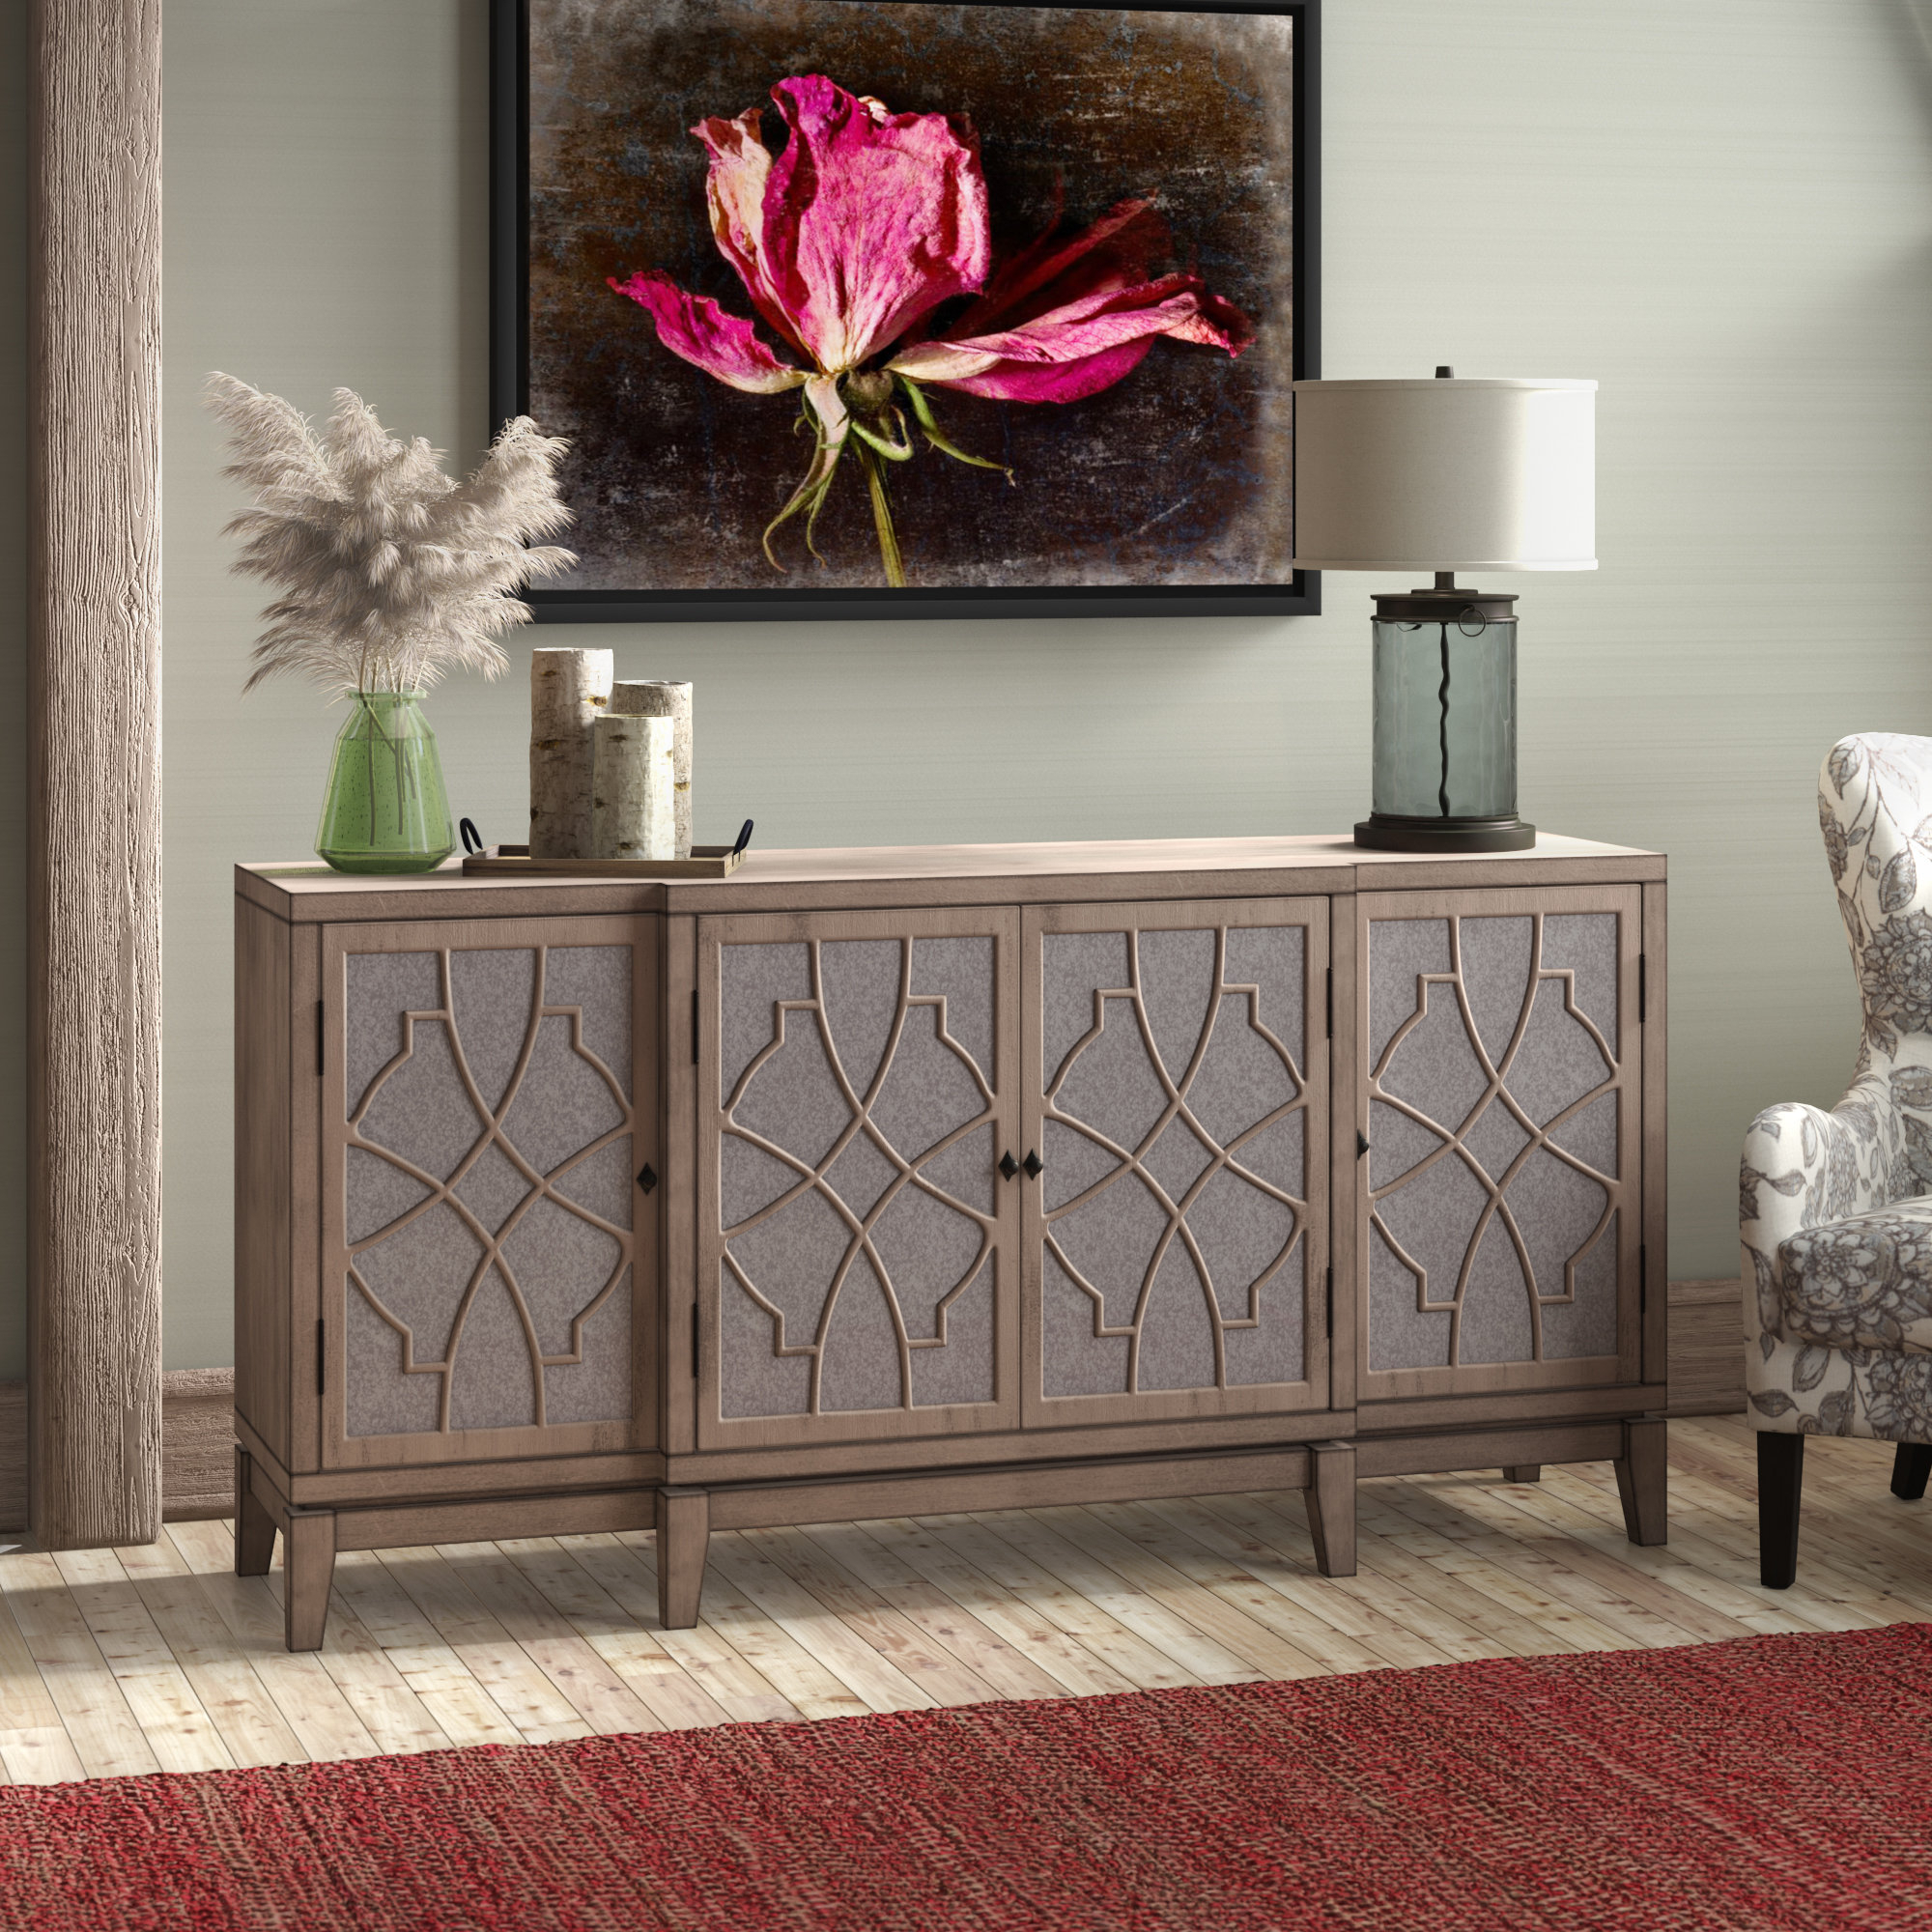 Preferred Kendall Sideboard With Kendall Sideboards (Gallery 4 of 20)